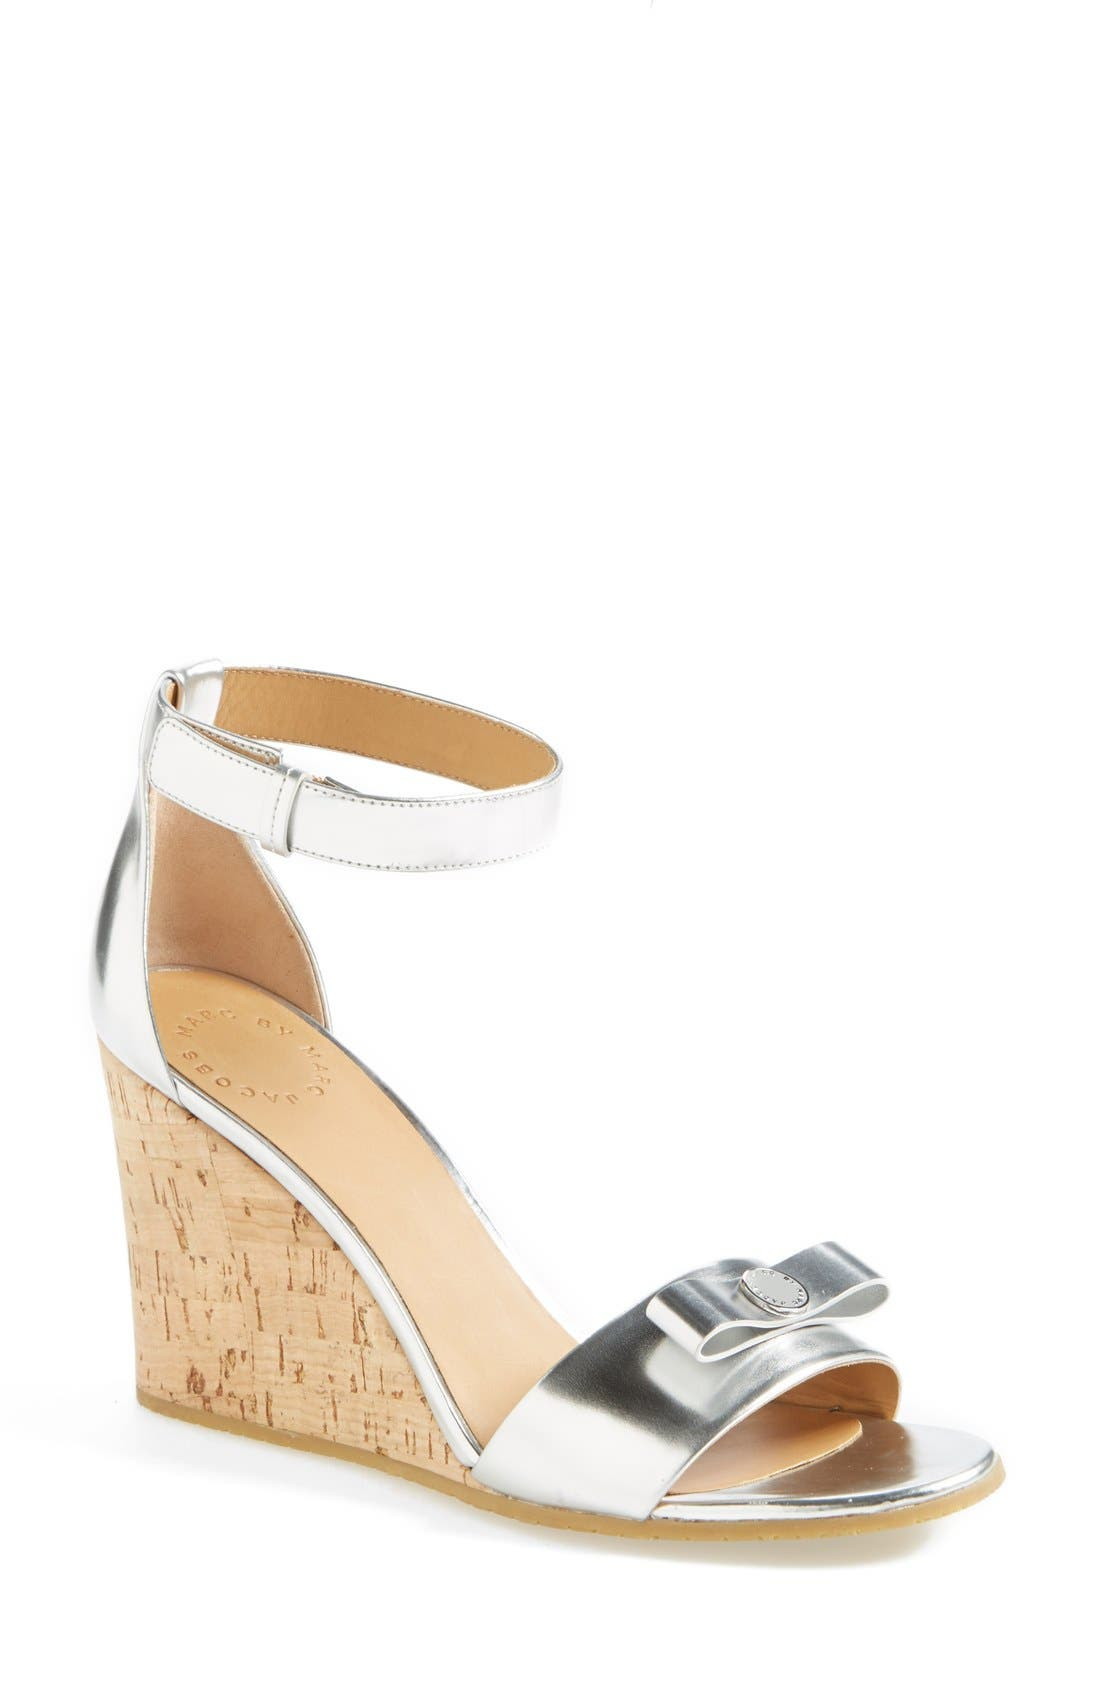 MARC BY MARC JACOBS 'Logo Disc' Sandal, Main, color, 040